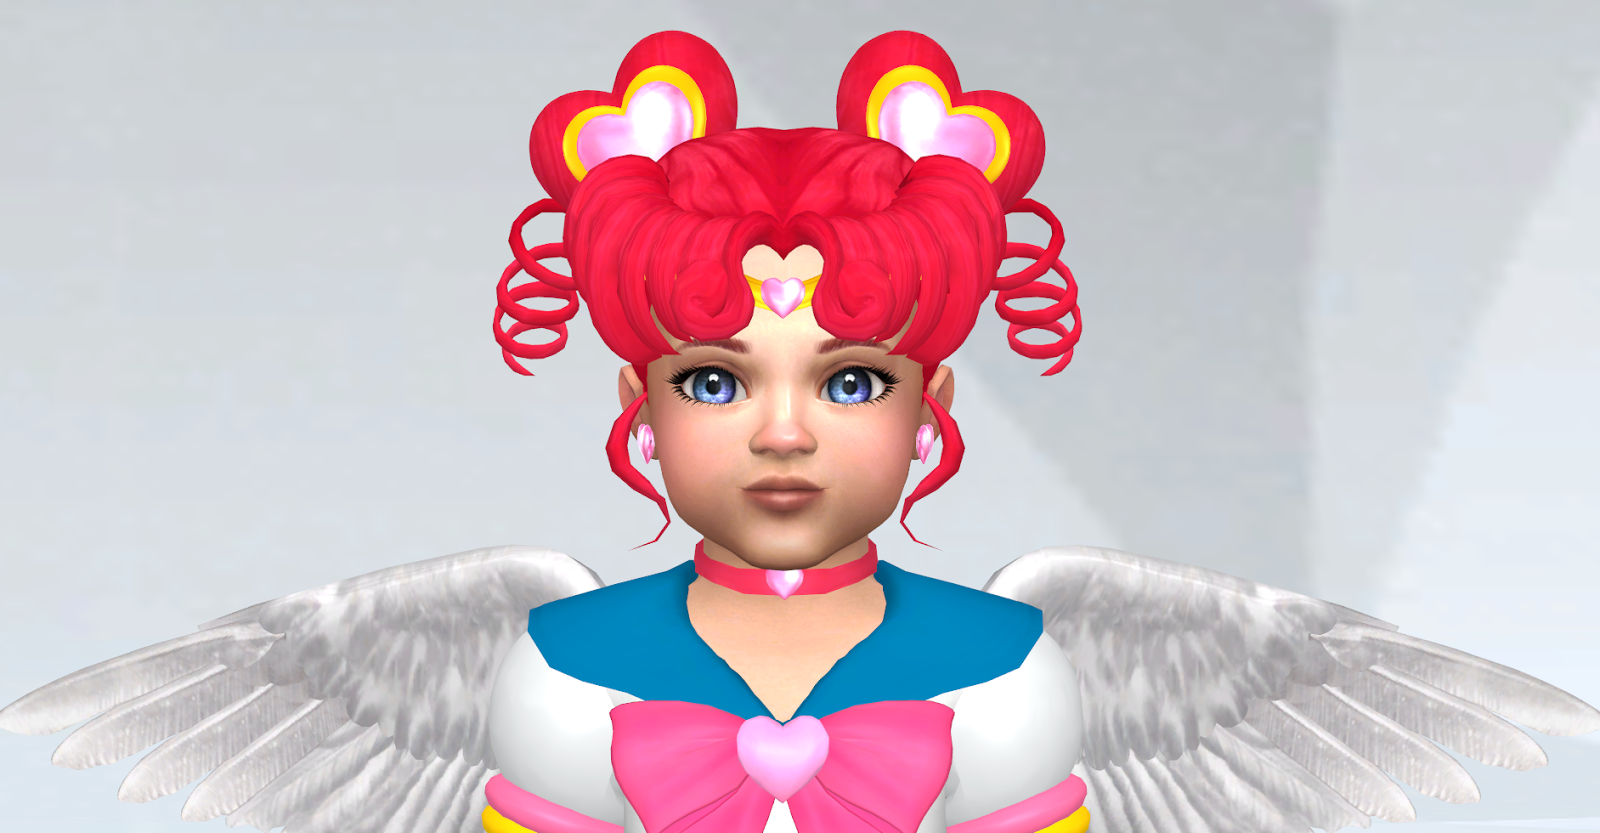 Sailor Chibi Chibi Hair, Clothing and Accessories by SilverMoon